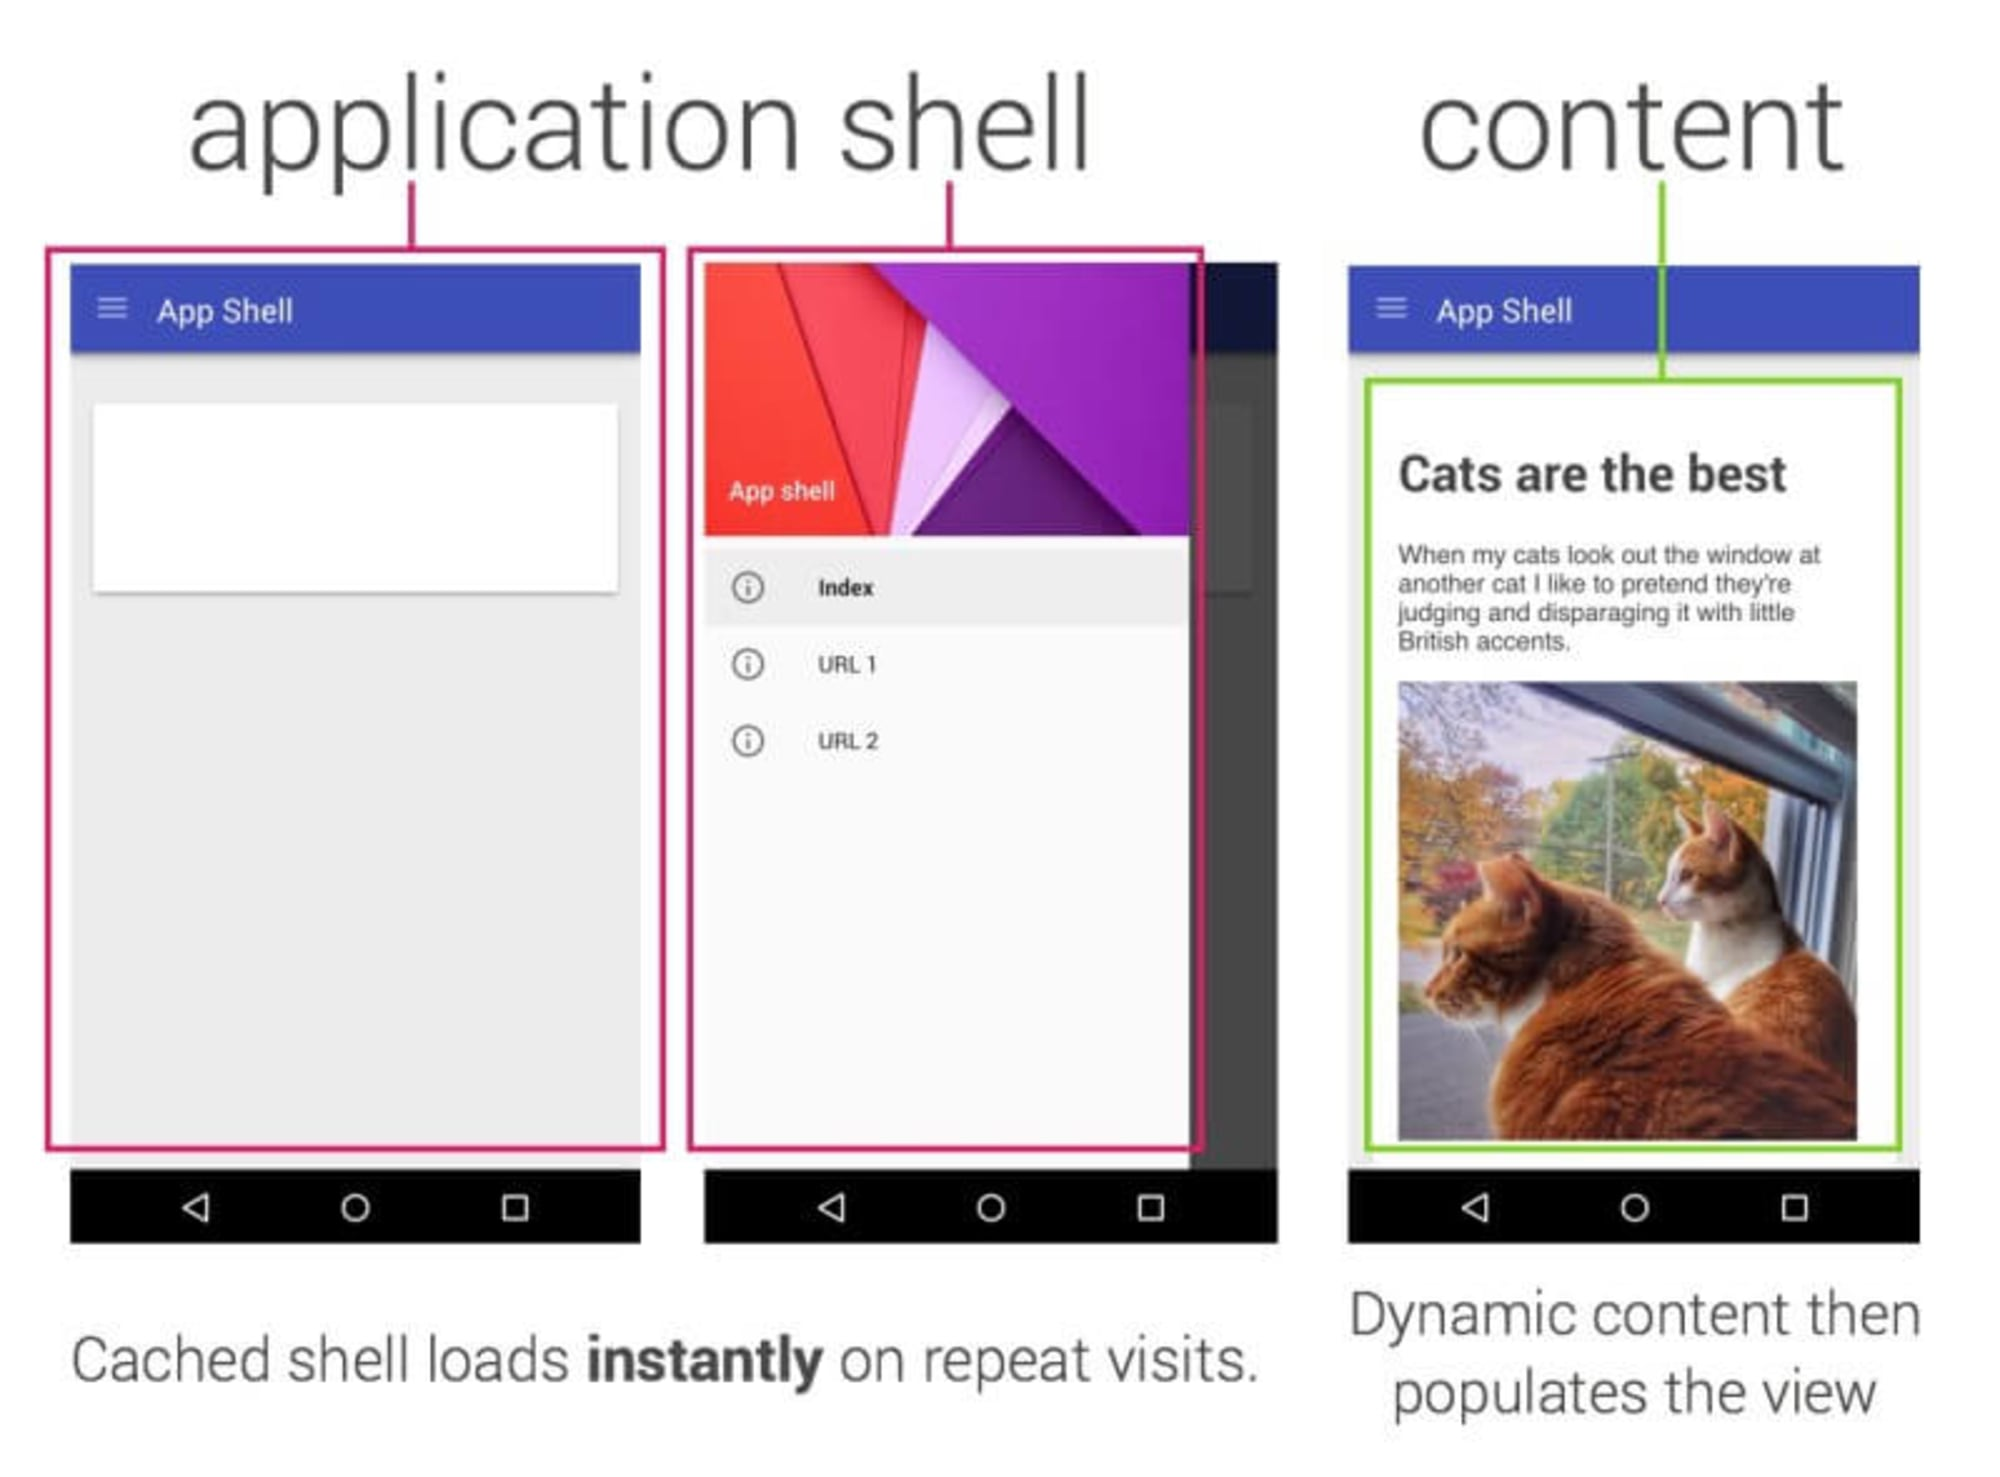 An application shell is the minimal HTML, CSS, and JavaScript powering a user interface